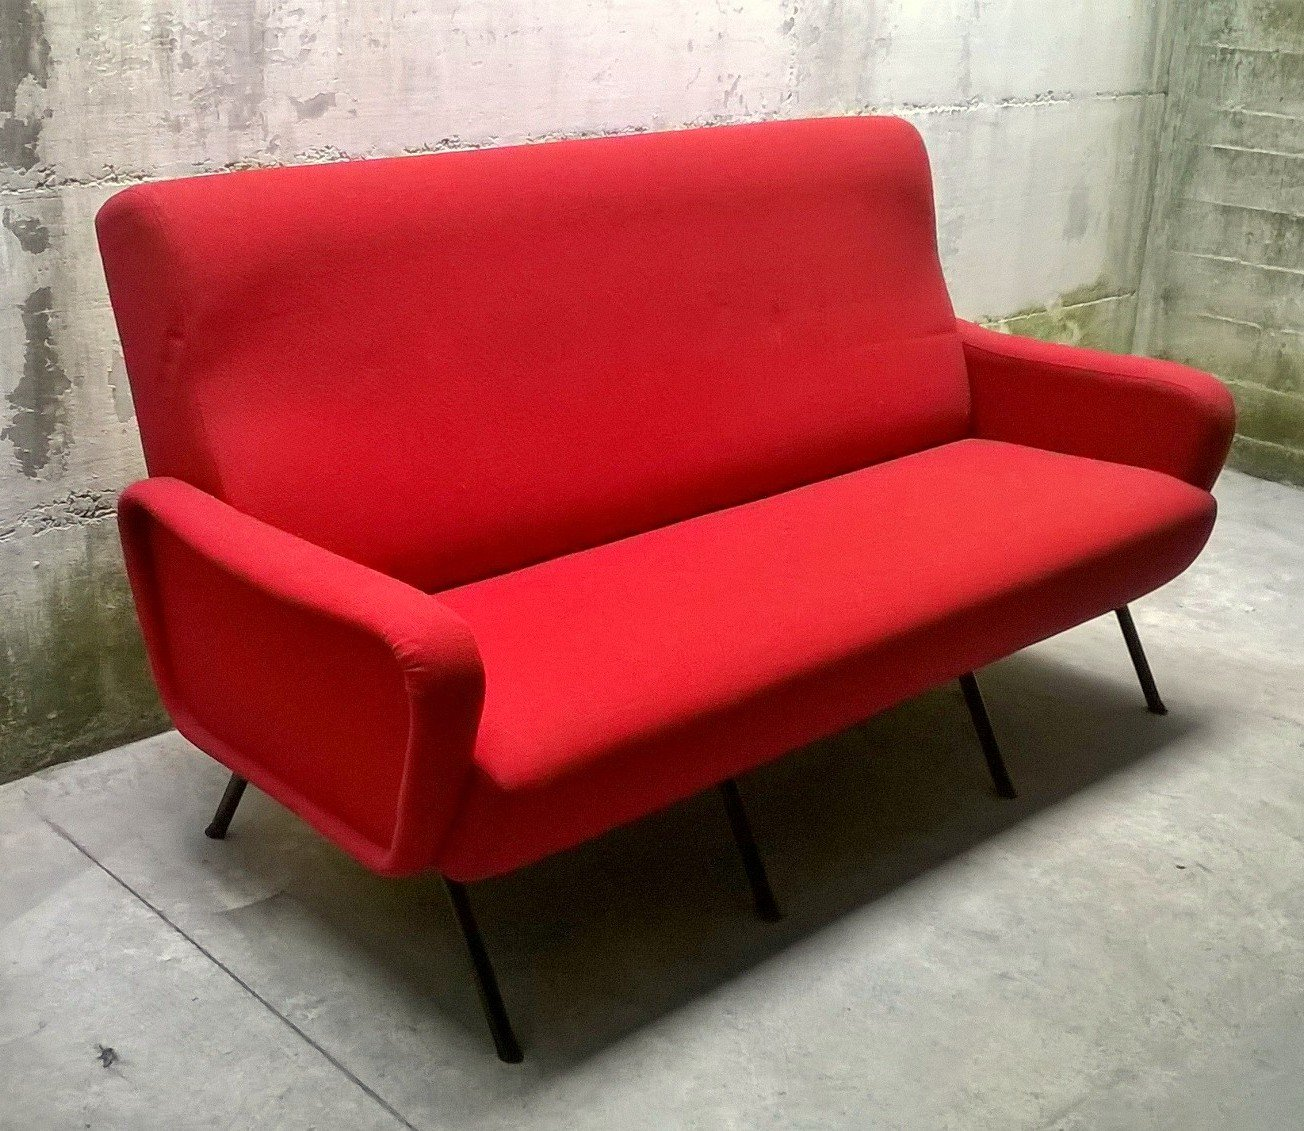 100 italian sofa 3 seater high end modern designer italian